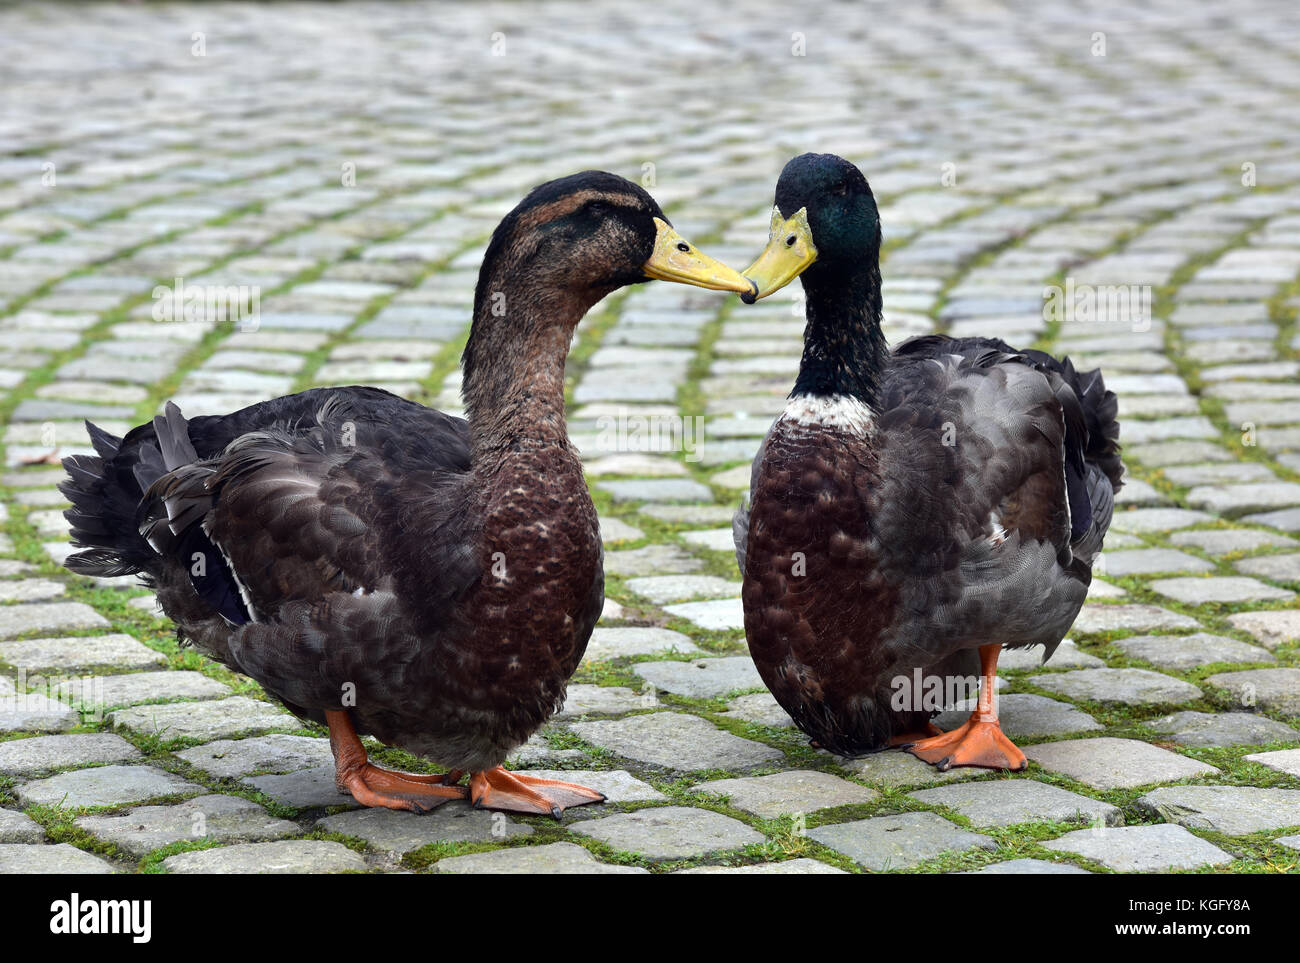 two ducks standing and waddling on a cobbled stone area or road with their beaks touching each other looking at - Stock Image